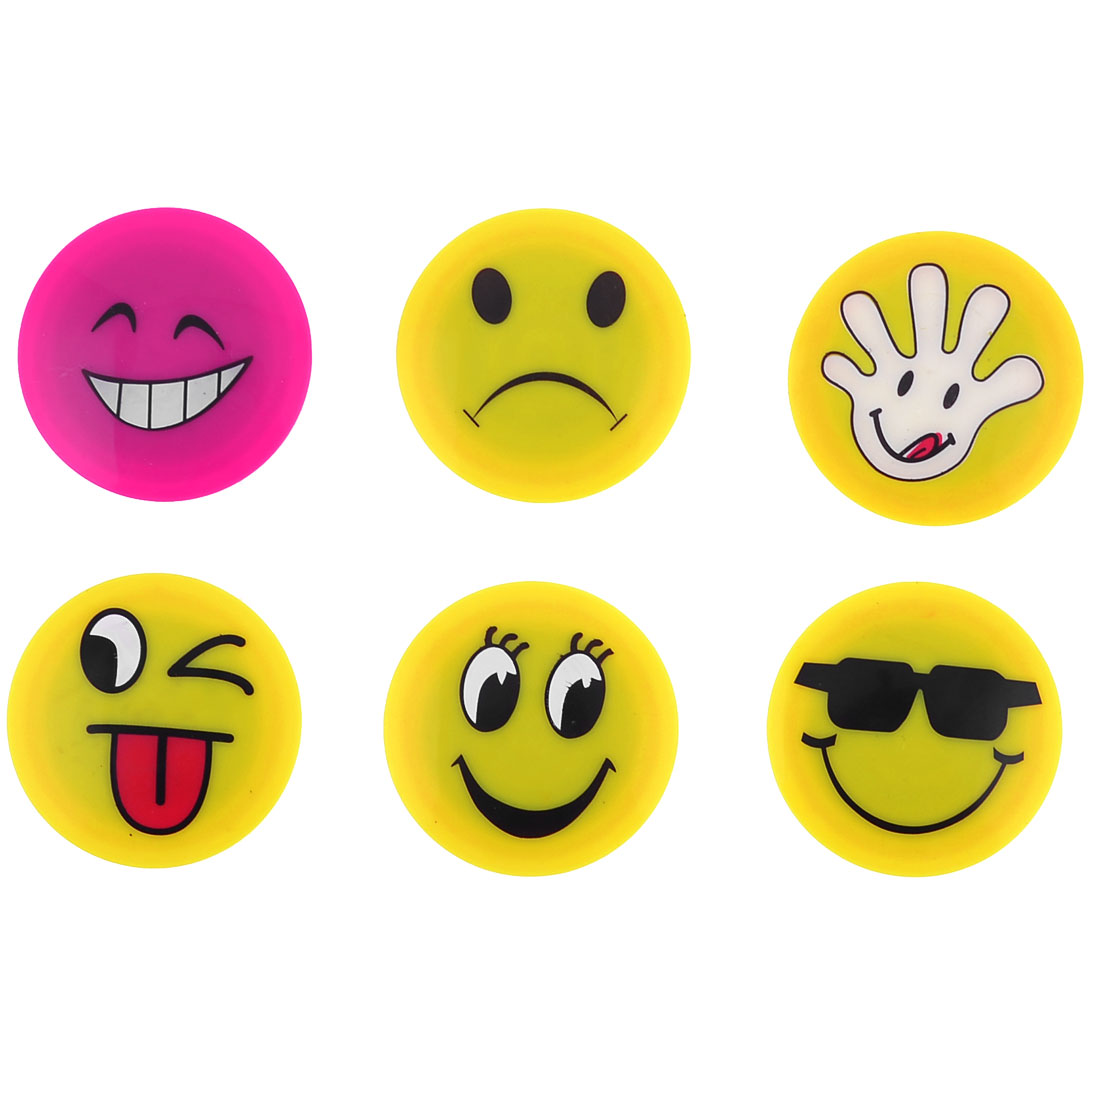 Cartoon Face Plastic File Cabinet Refrigerator Magnet Sticker 6PCS